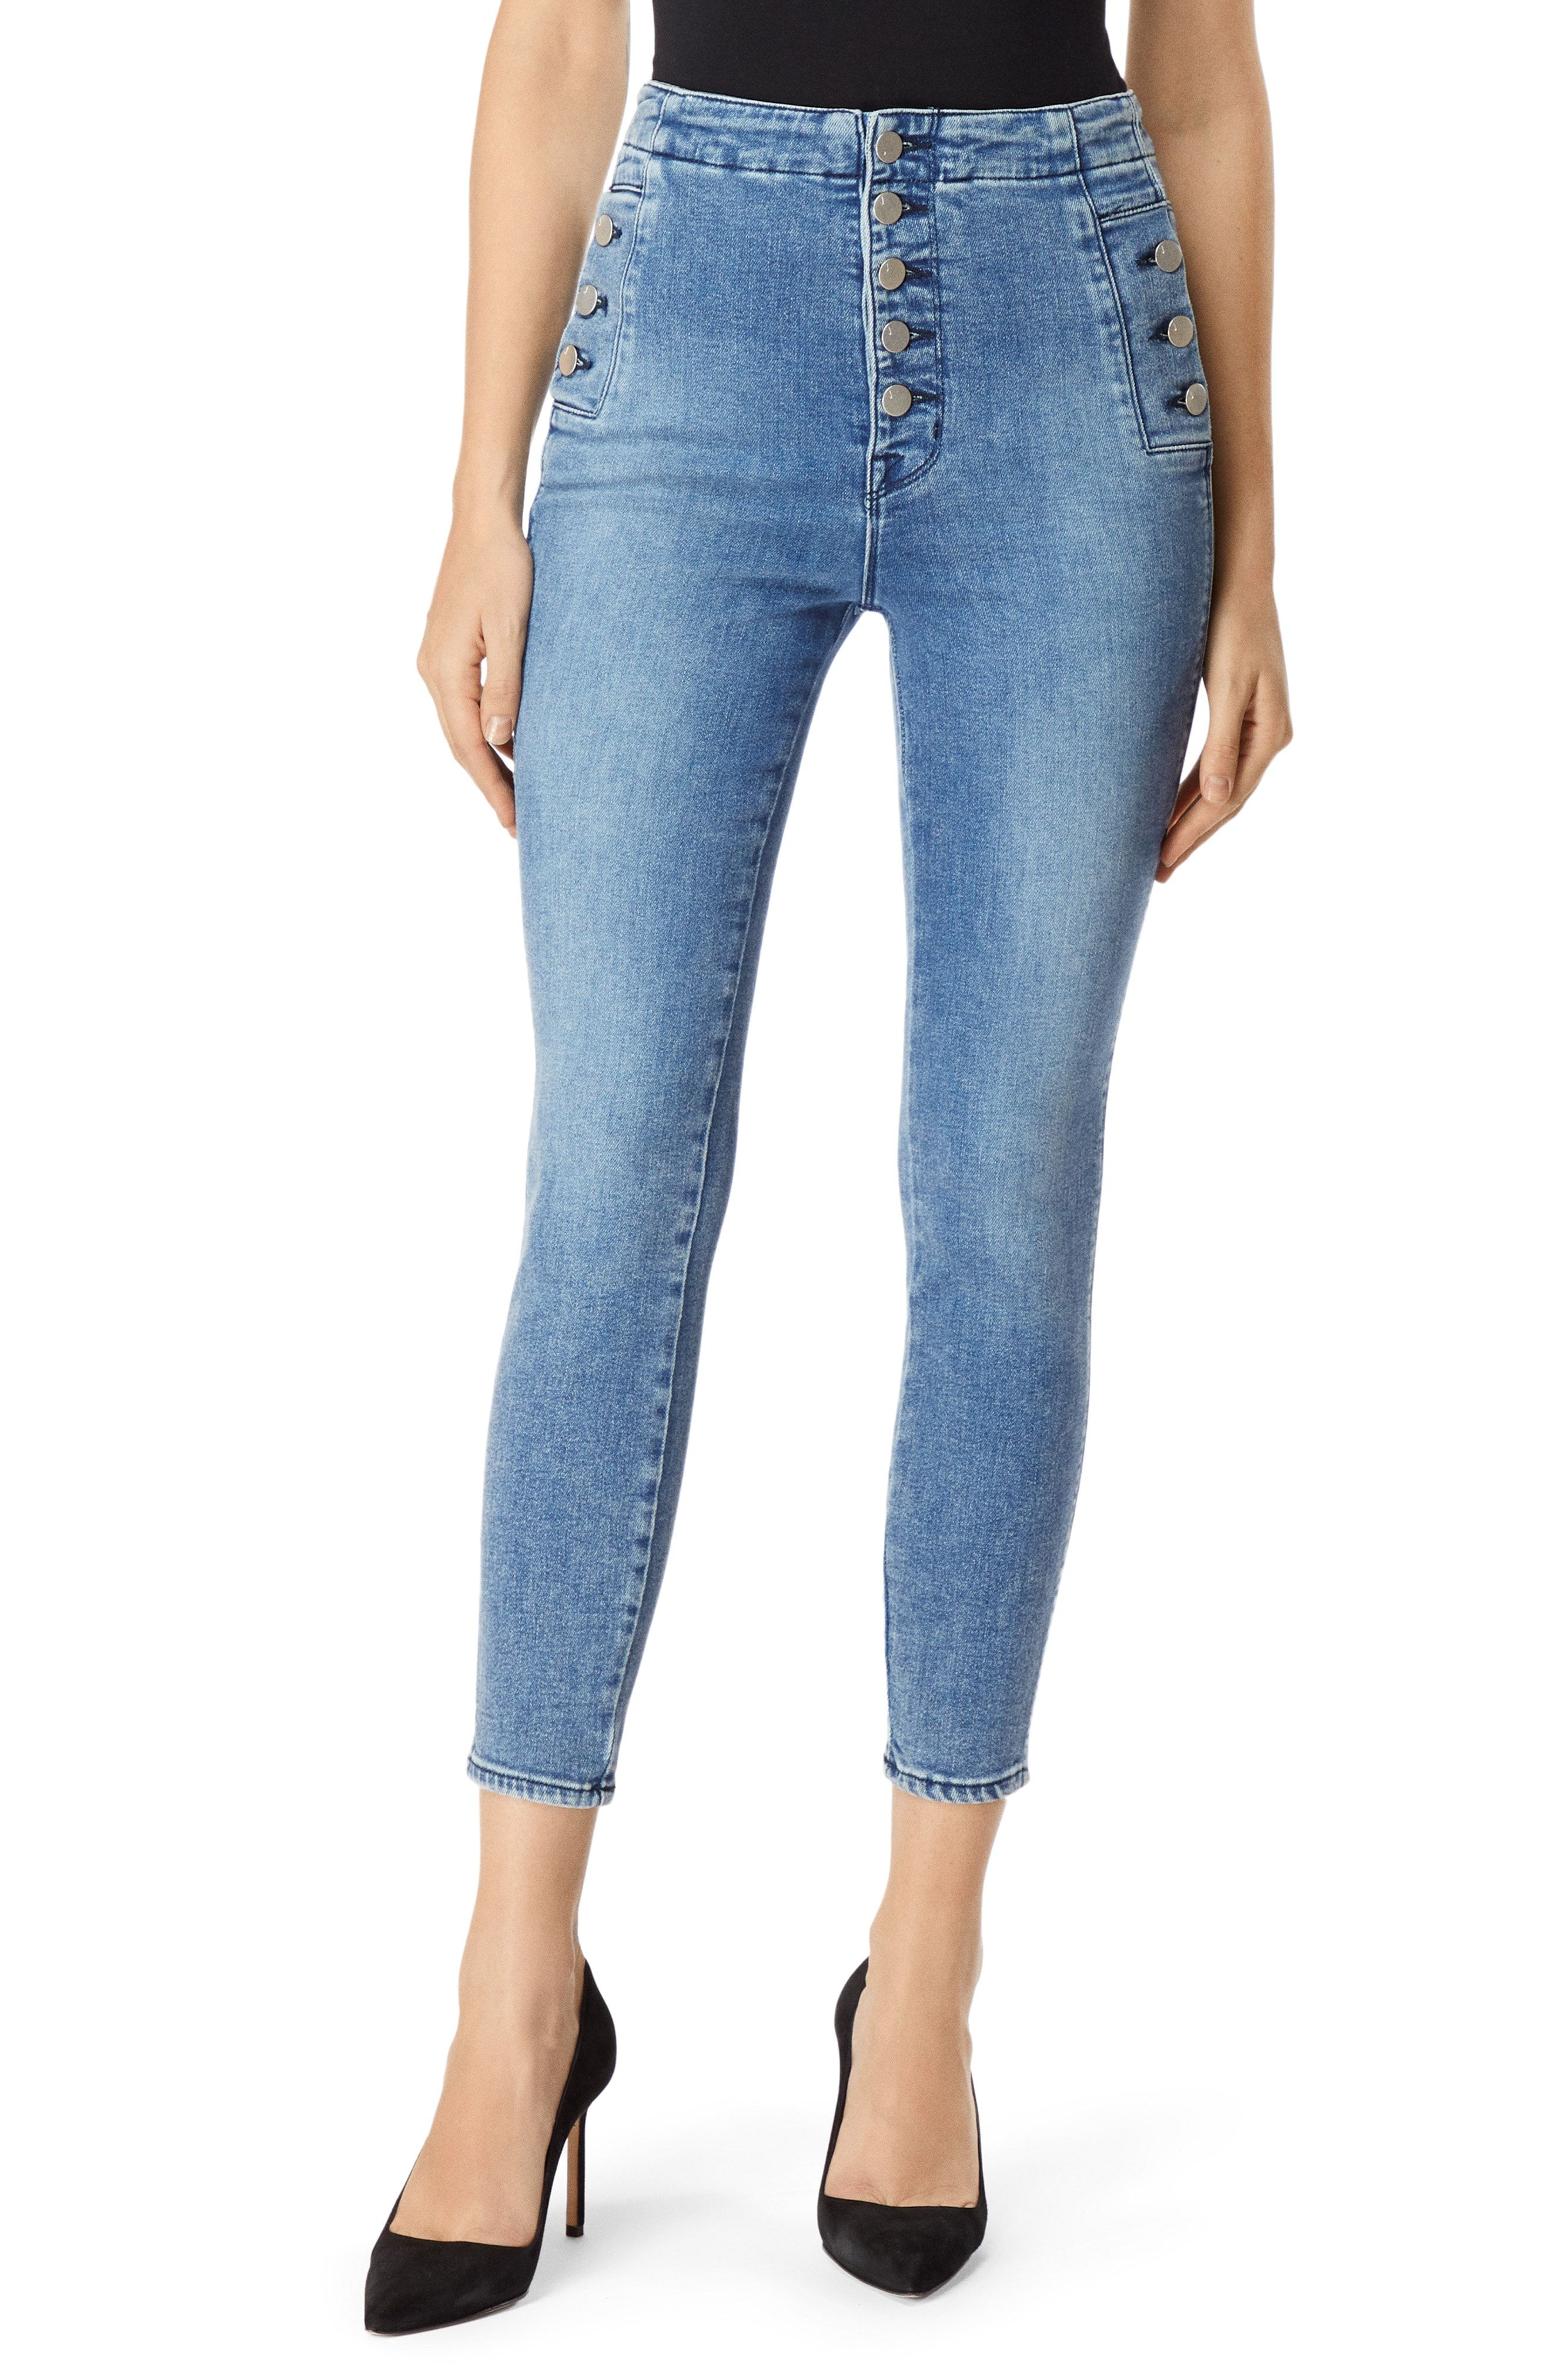 8d8ff0d8d31a8 12 Best High-Waisted Jeans for Women